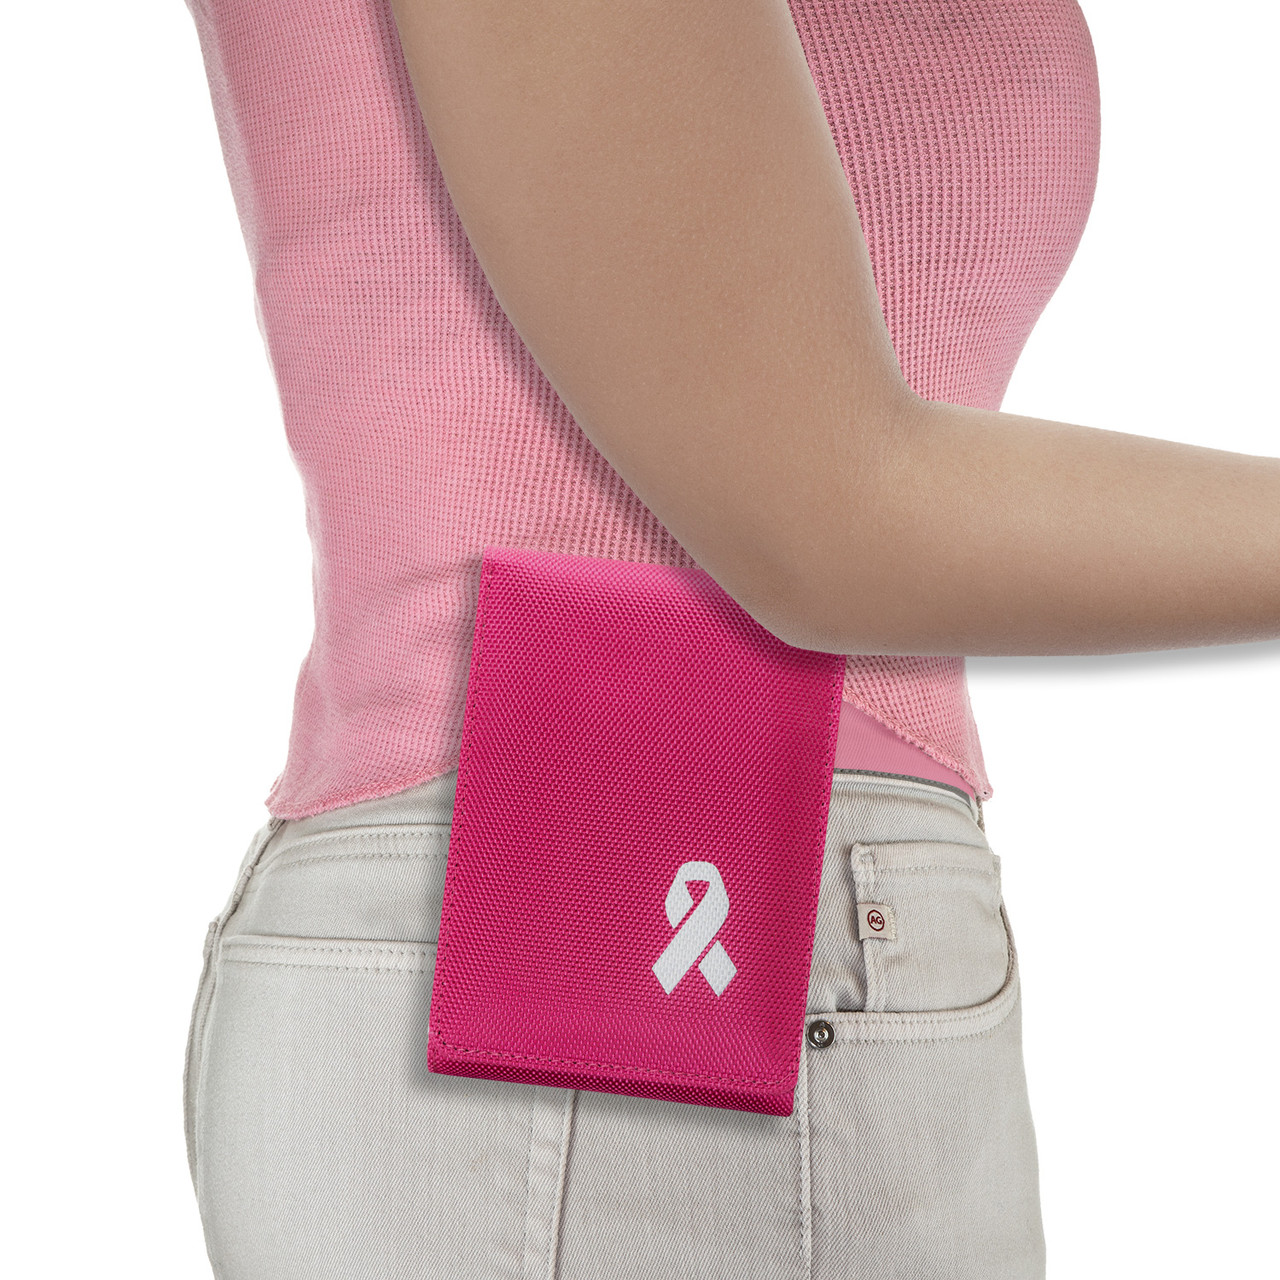 FNS-9C Pink Covert Series Holster